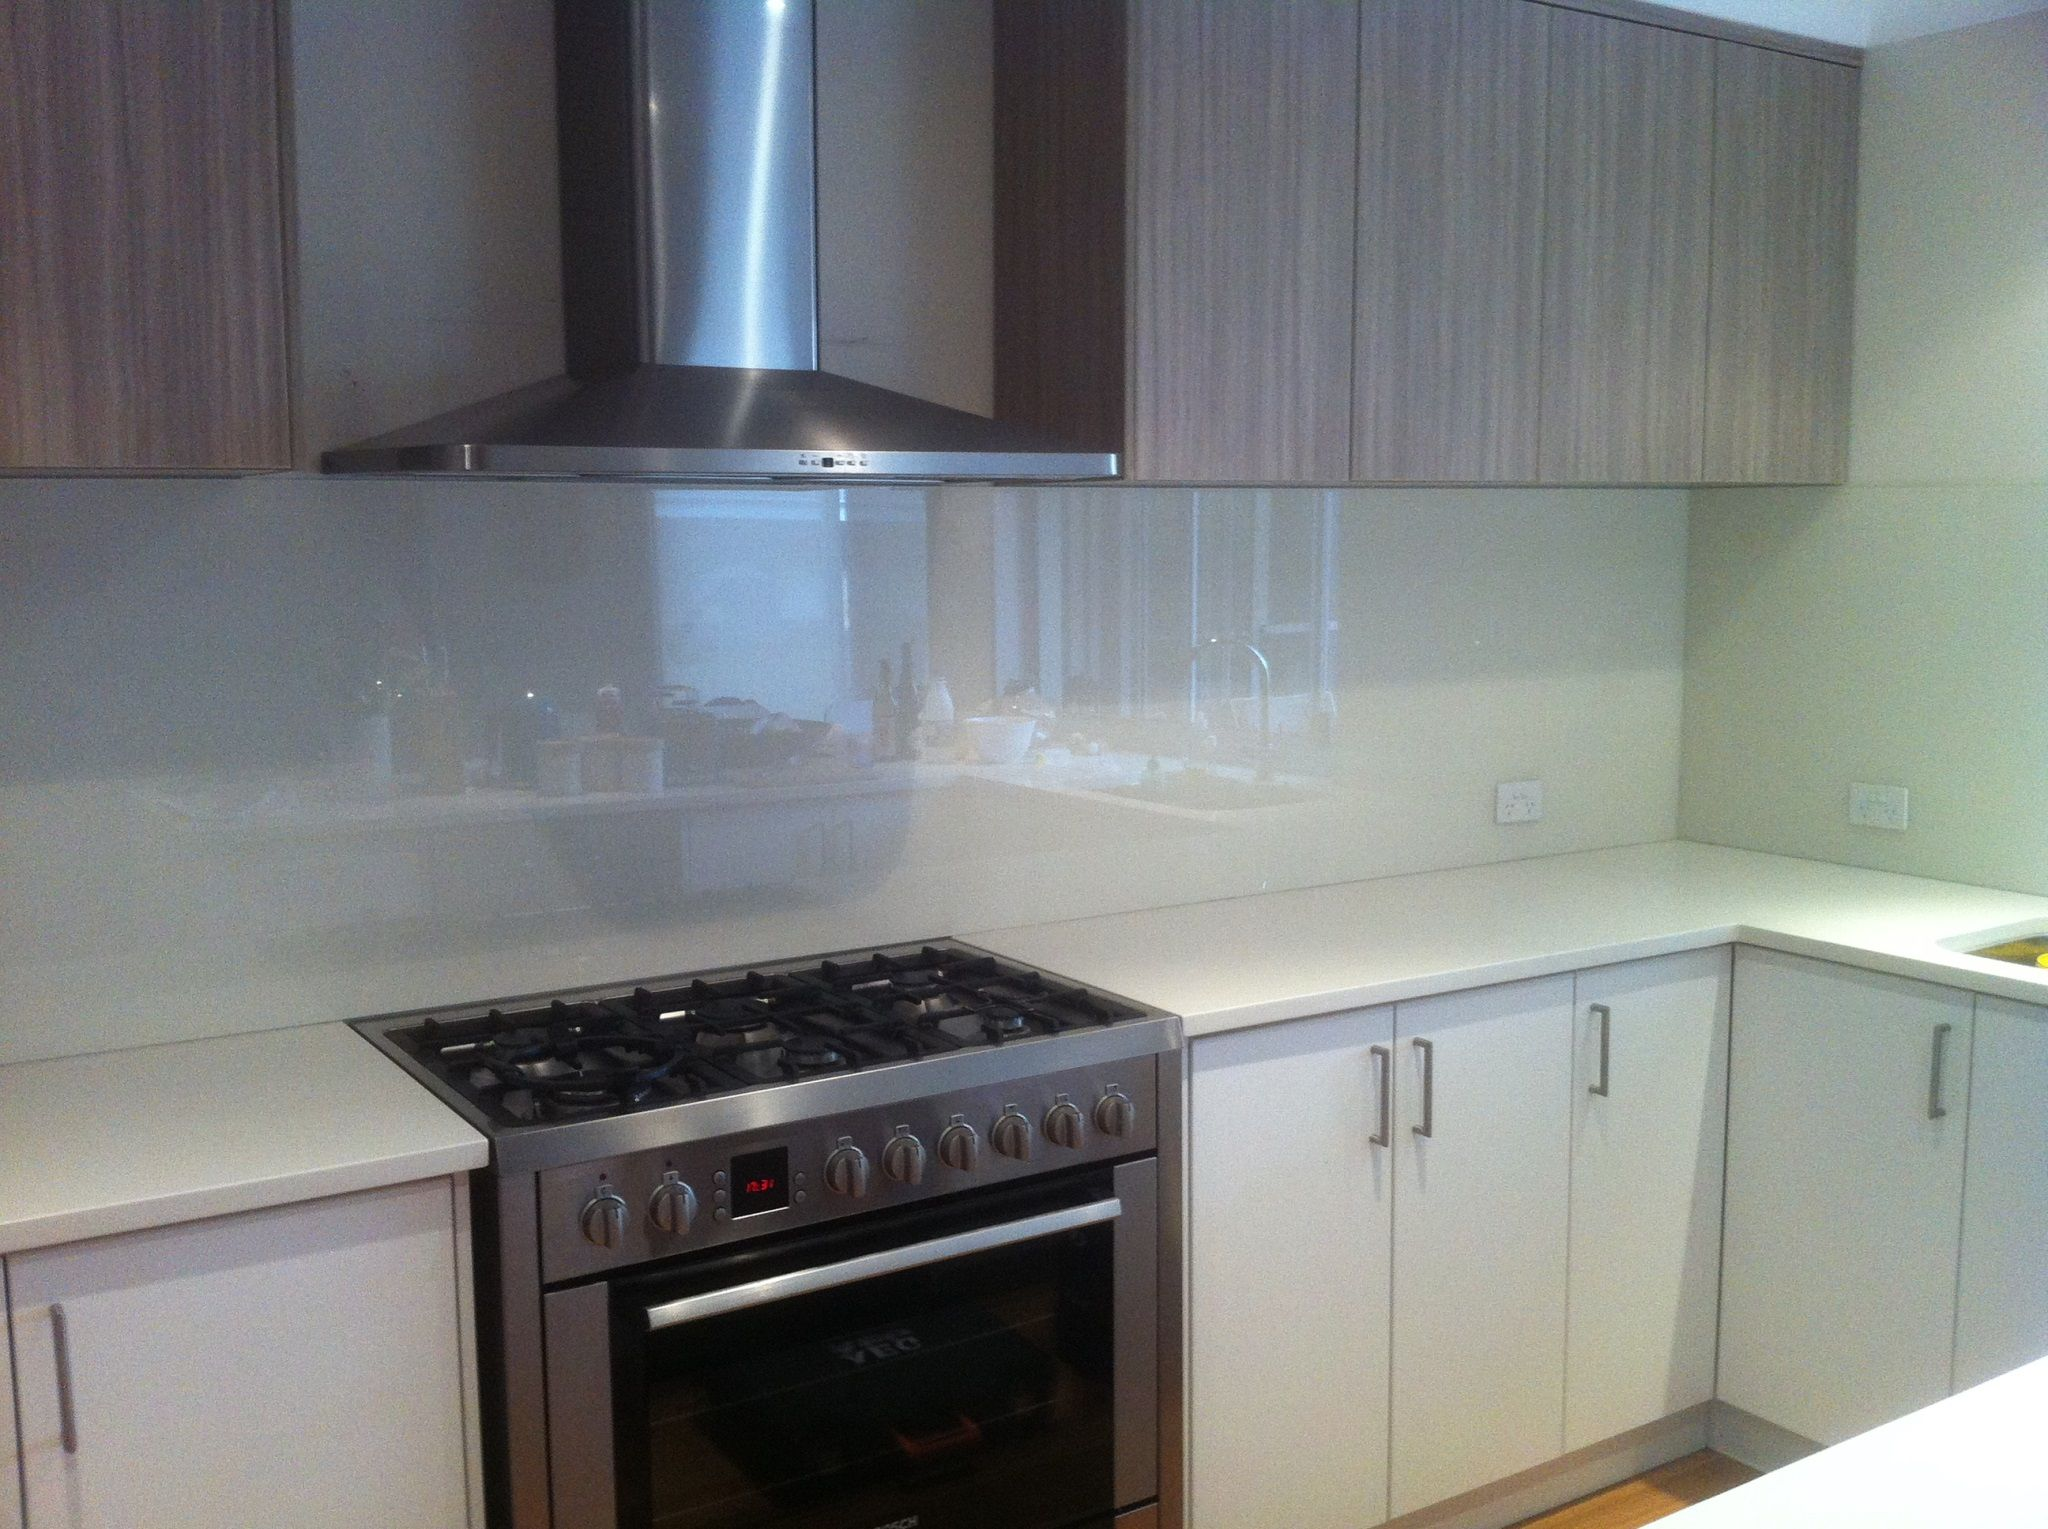 Image result for printed glass kitchen splashbacks photography image result for printed glass kitchen splashbacks photography ideas pinterest kitchen splashback ideas splashback ideas and modern white kitchens solutioingenieria Gallery